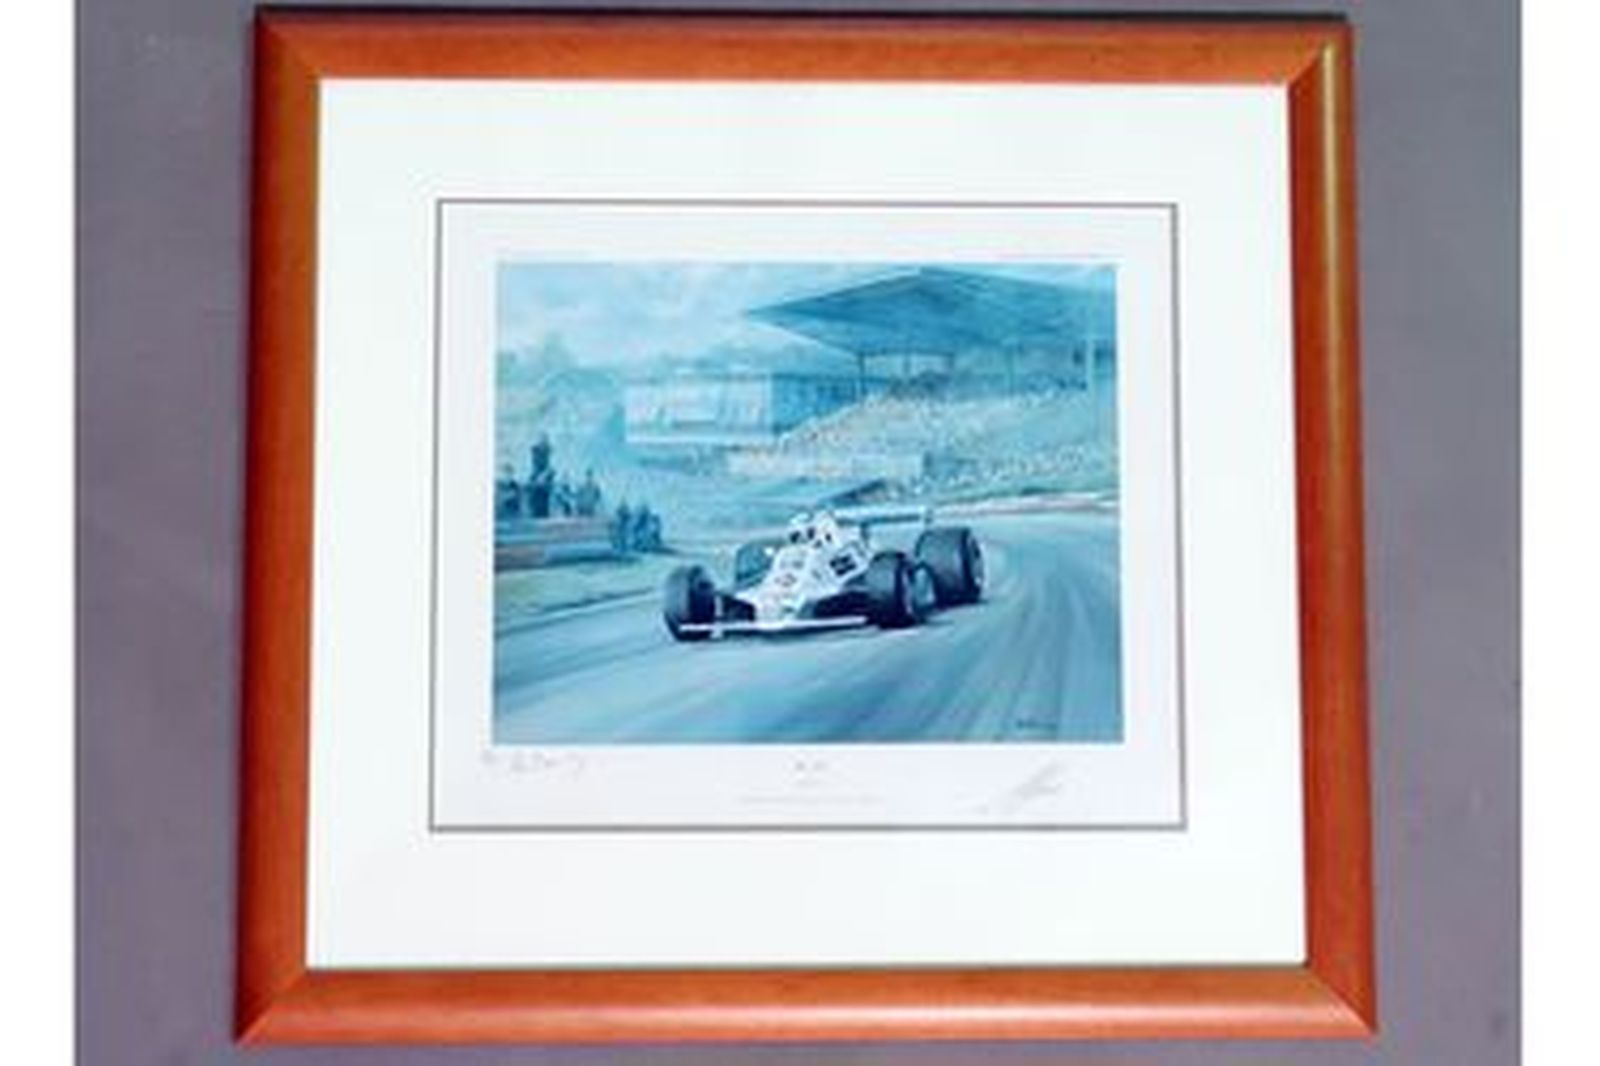 Framed Signed Print - 'Alan Jones' by Alan Fearnley Limited Edition No.231/850 (77cm x 72cm)